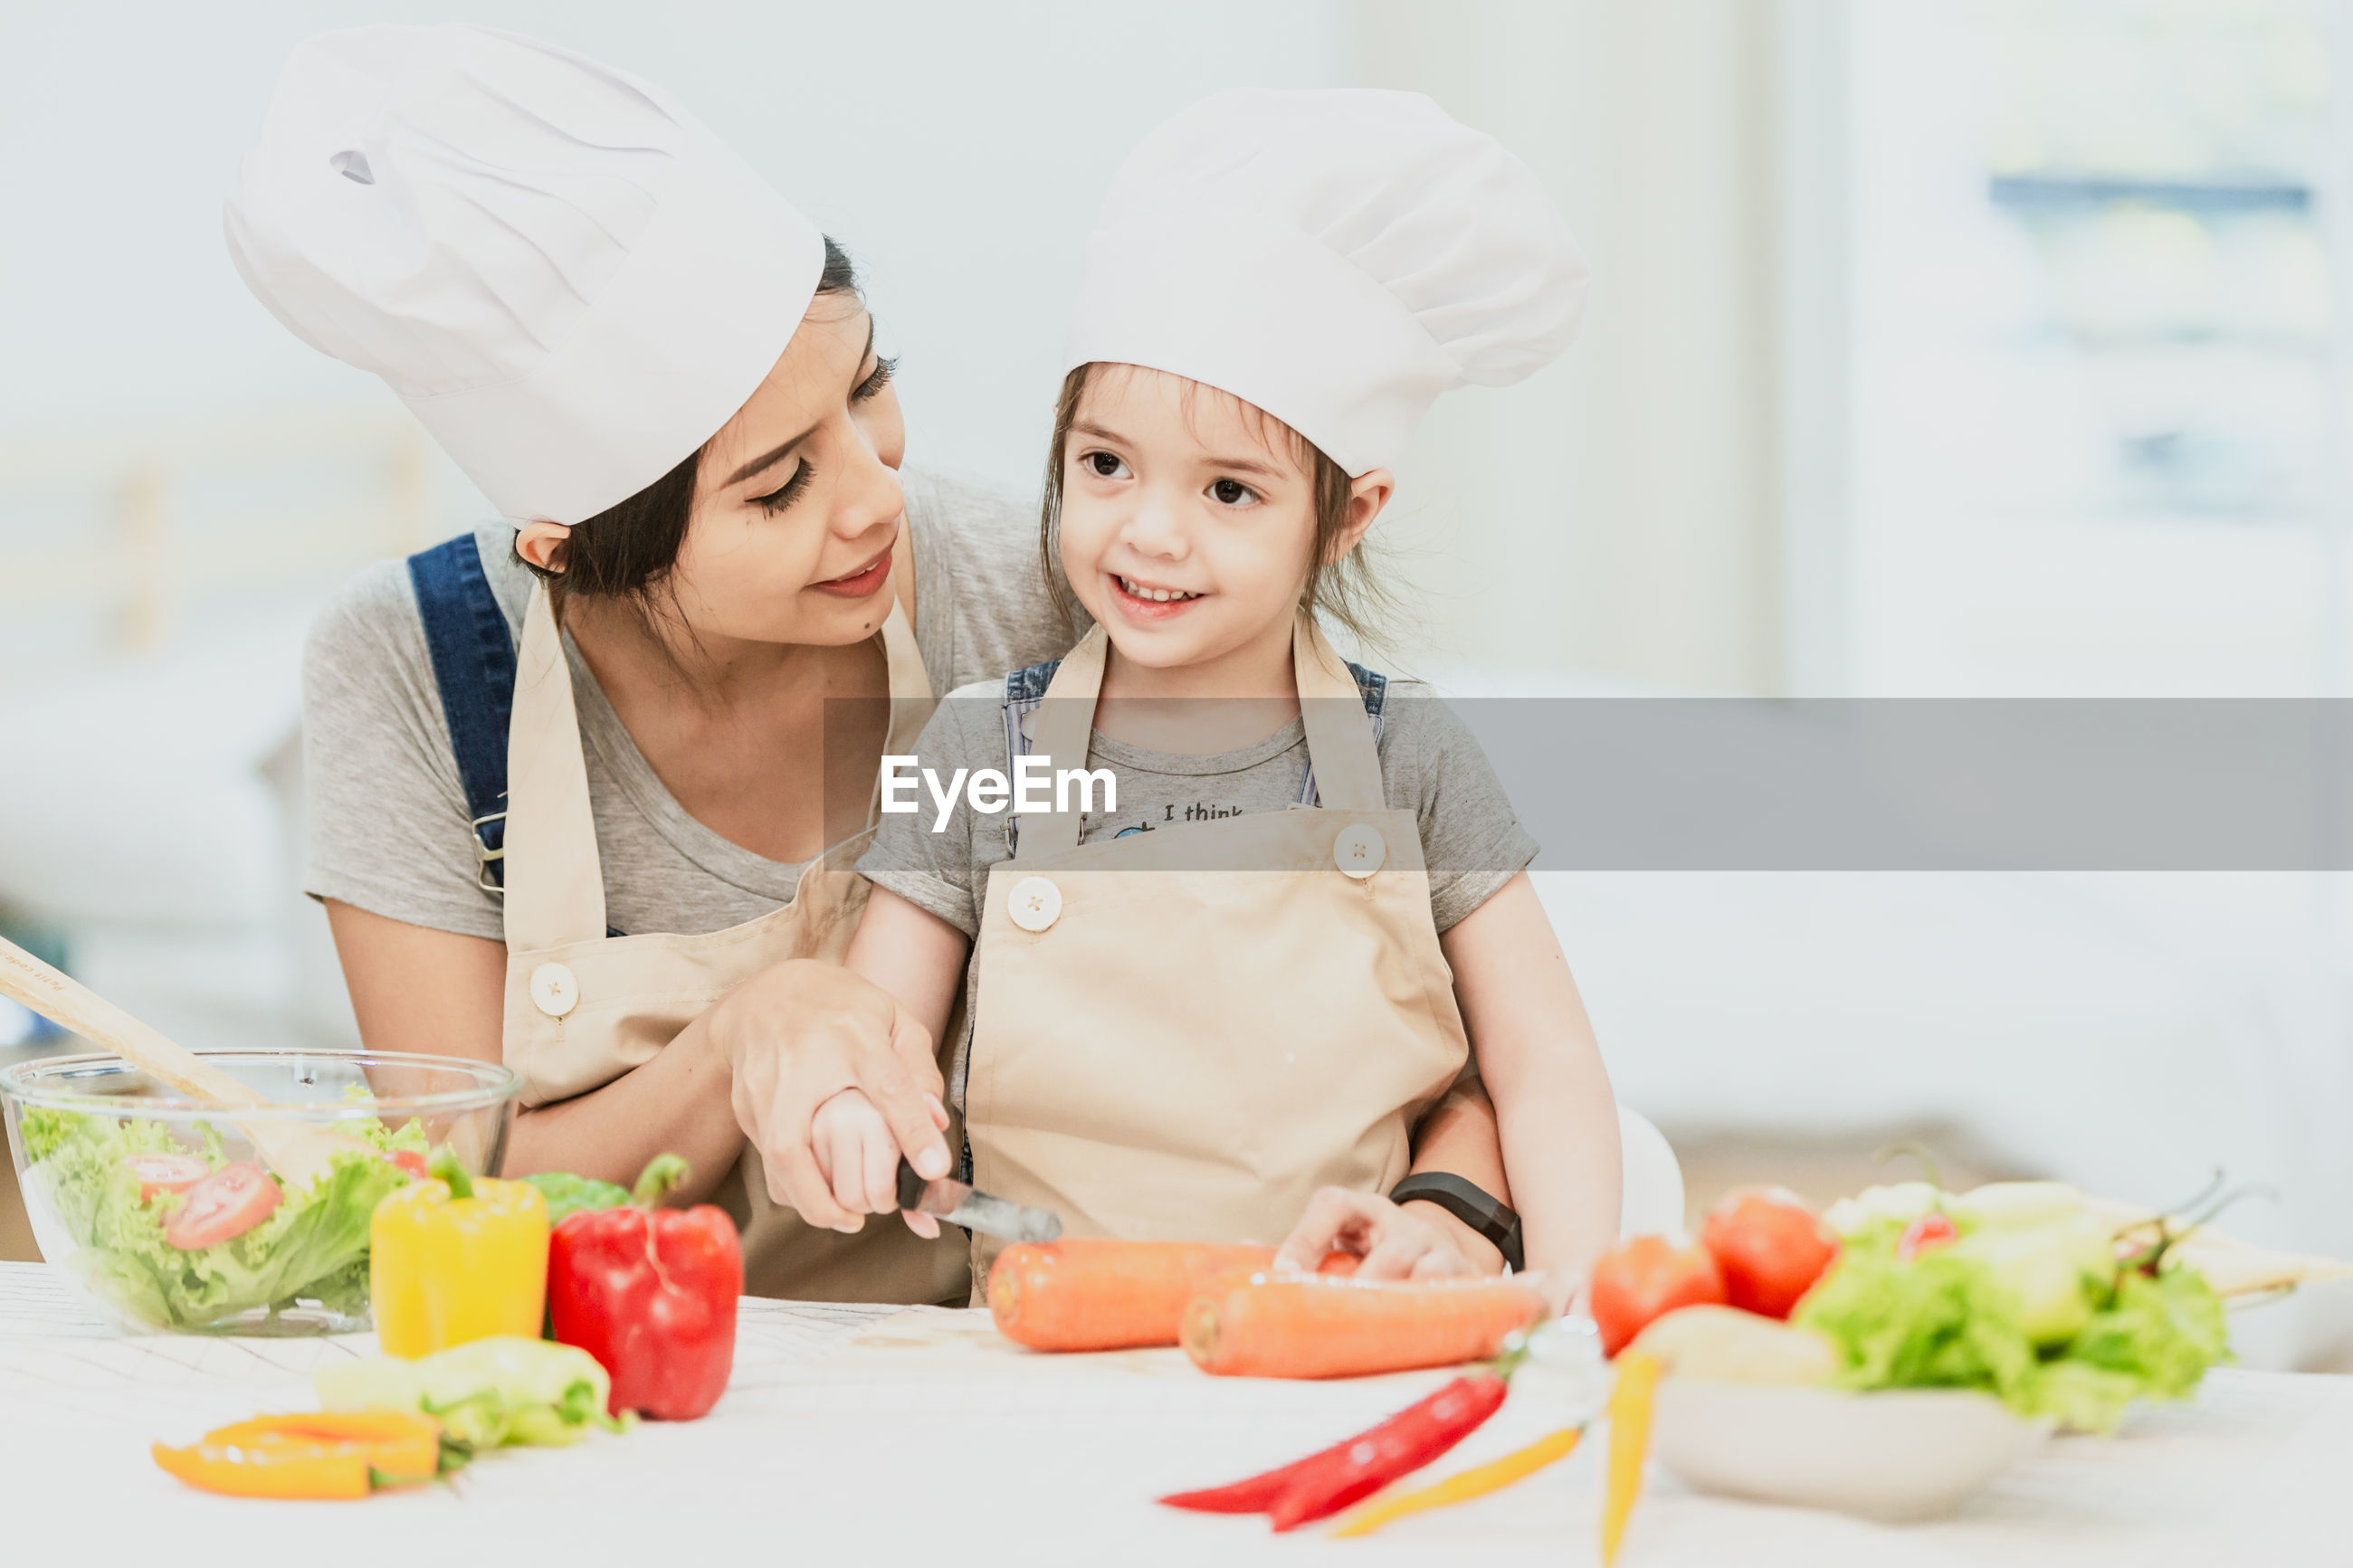 Mother and daughter preparing food on table